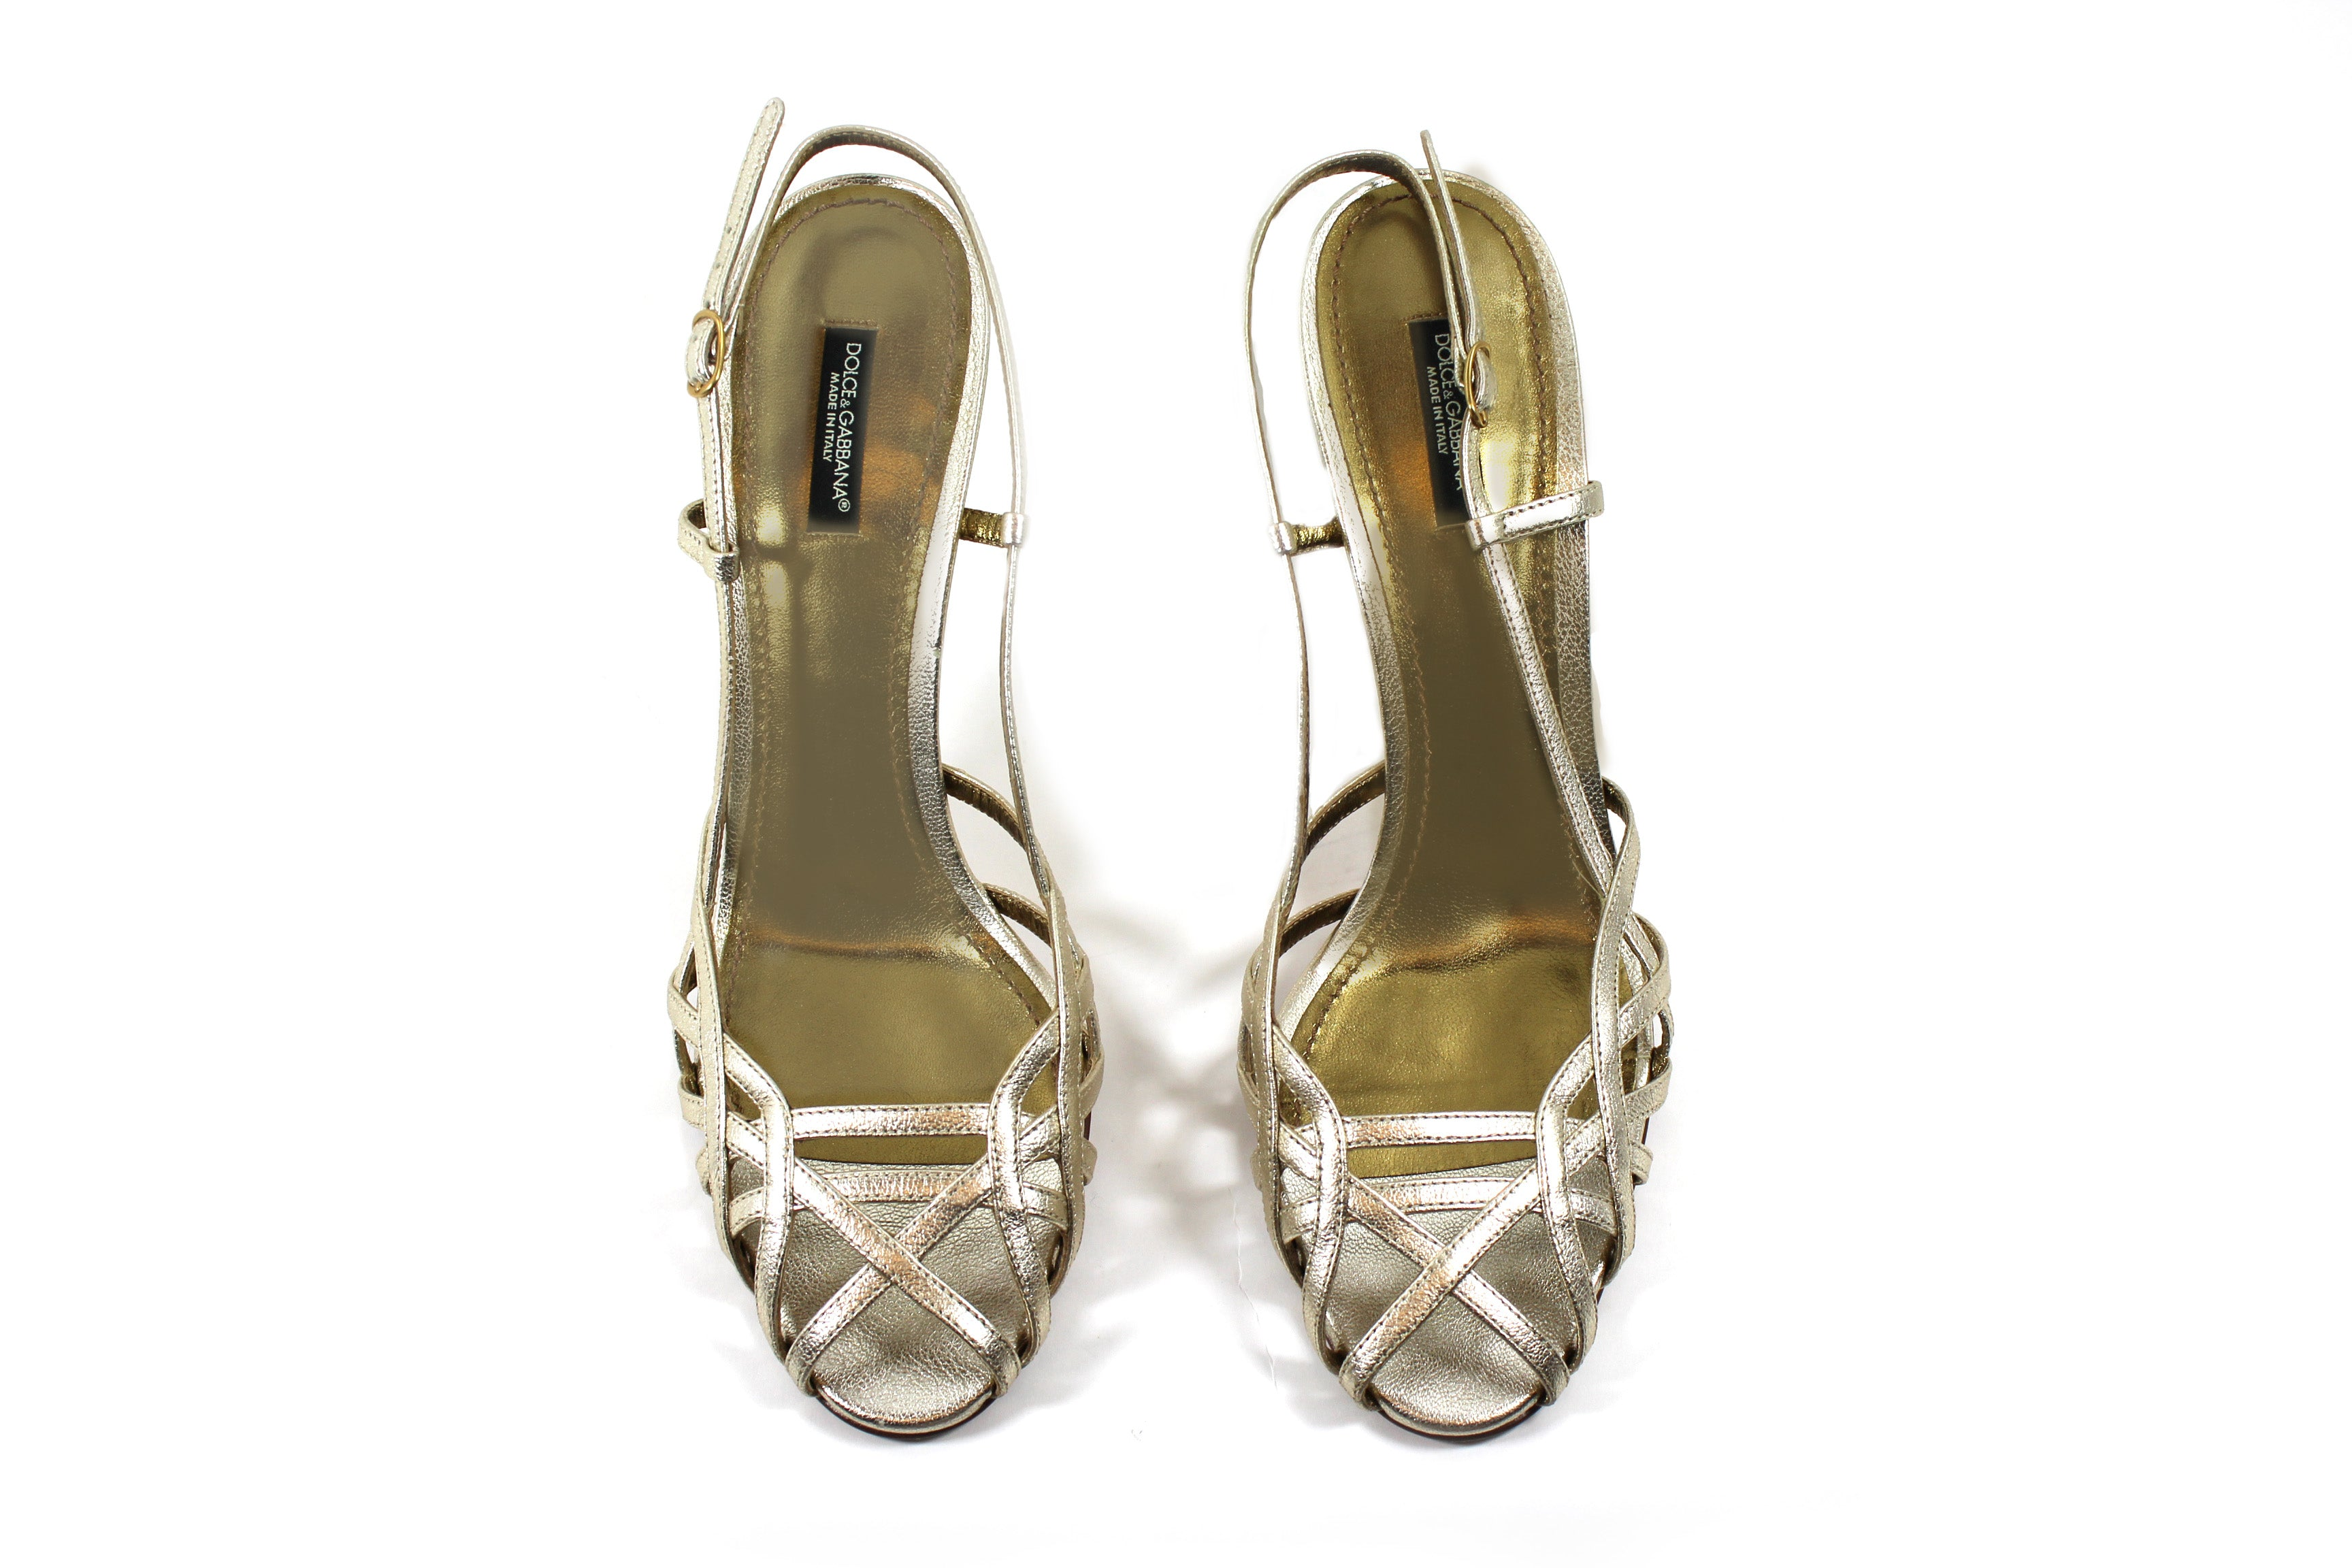 306ee799c79 Dolce   Gabbana Strappy Gold Leather Sandals (Size 40) – Encore ...